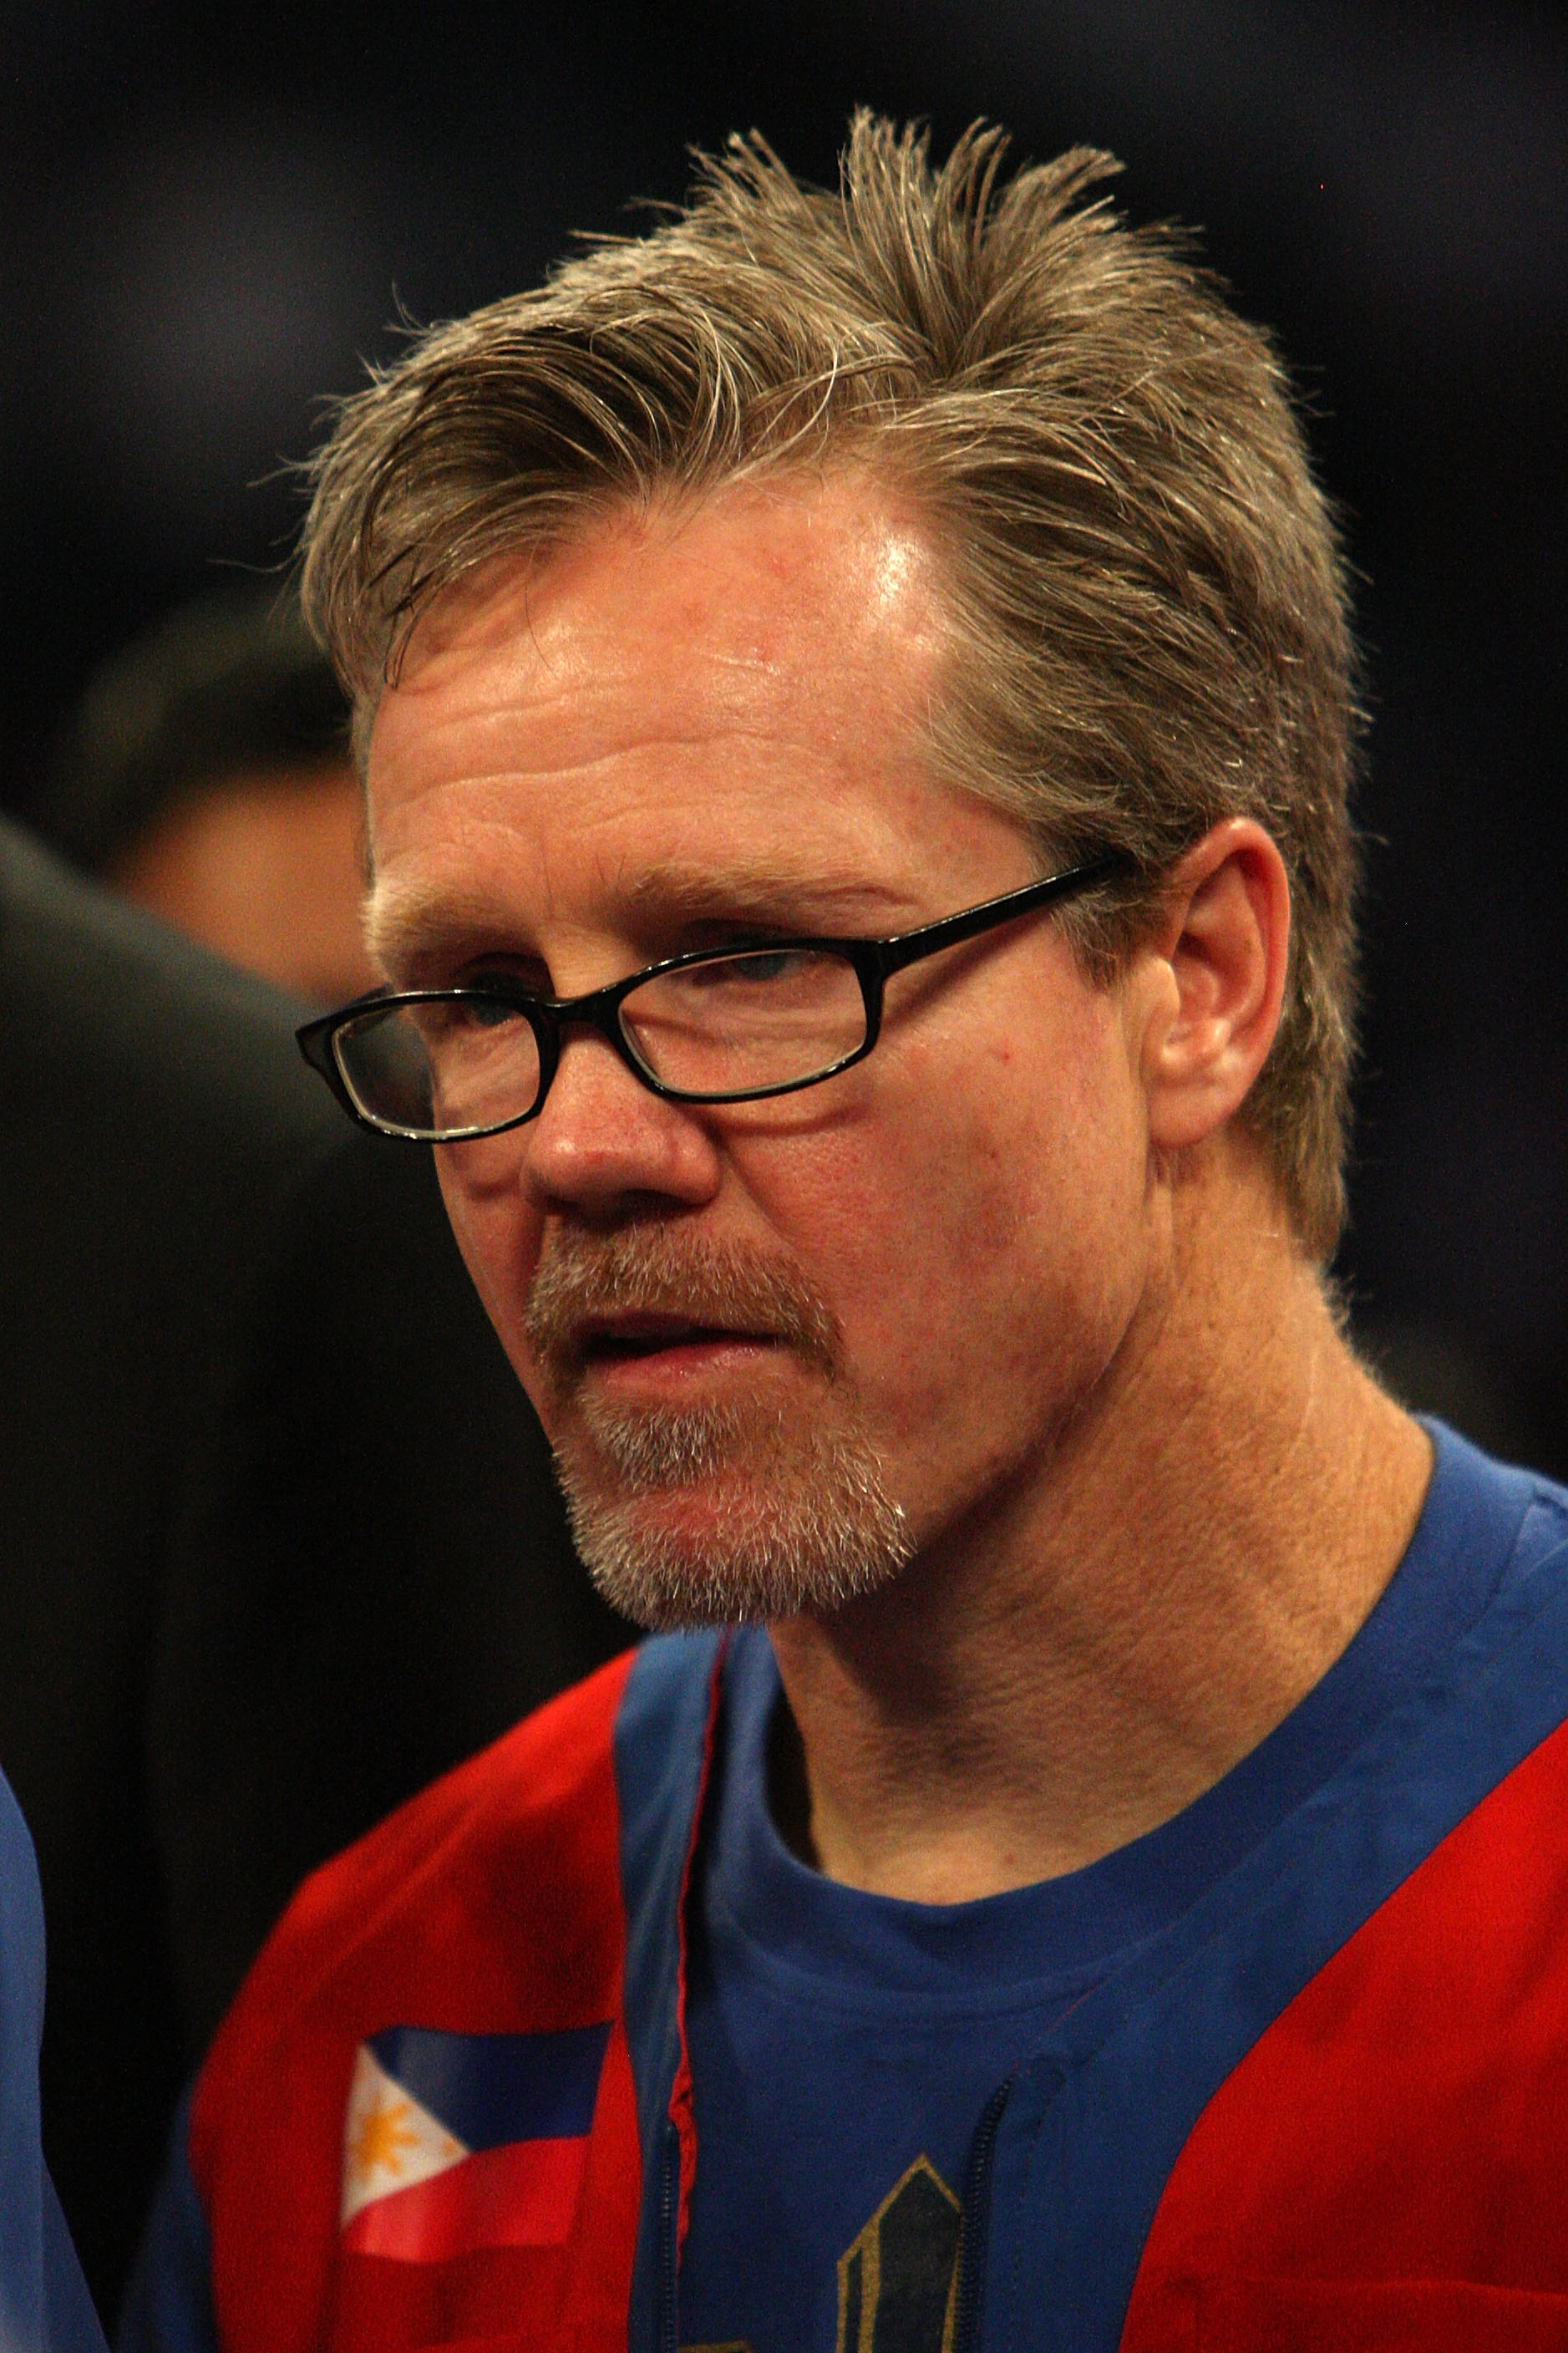 ARLINGTON, TX - MARCH 13:  Trainer Freddie Roach, who trains Manny Pacquiao of the Philippines, looks on in the ring after Pacquiao defeated Joshua Clottey of Ghana during the WBO welterweight title fight at Cowboys Stadium on March 13, 2010 in Arlington,